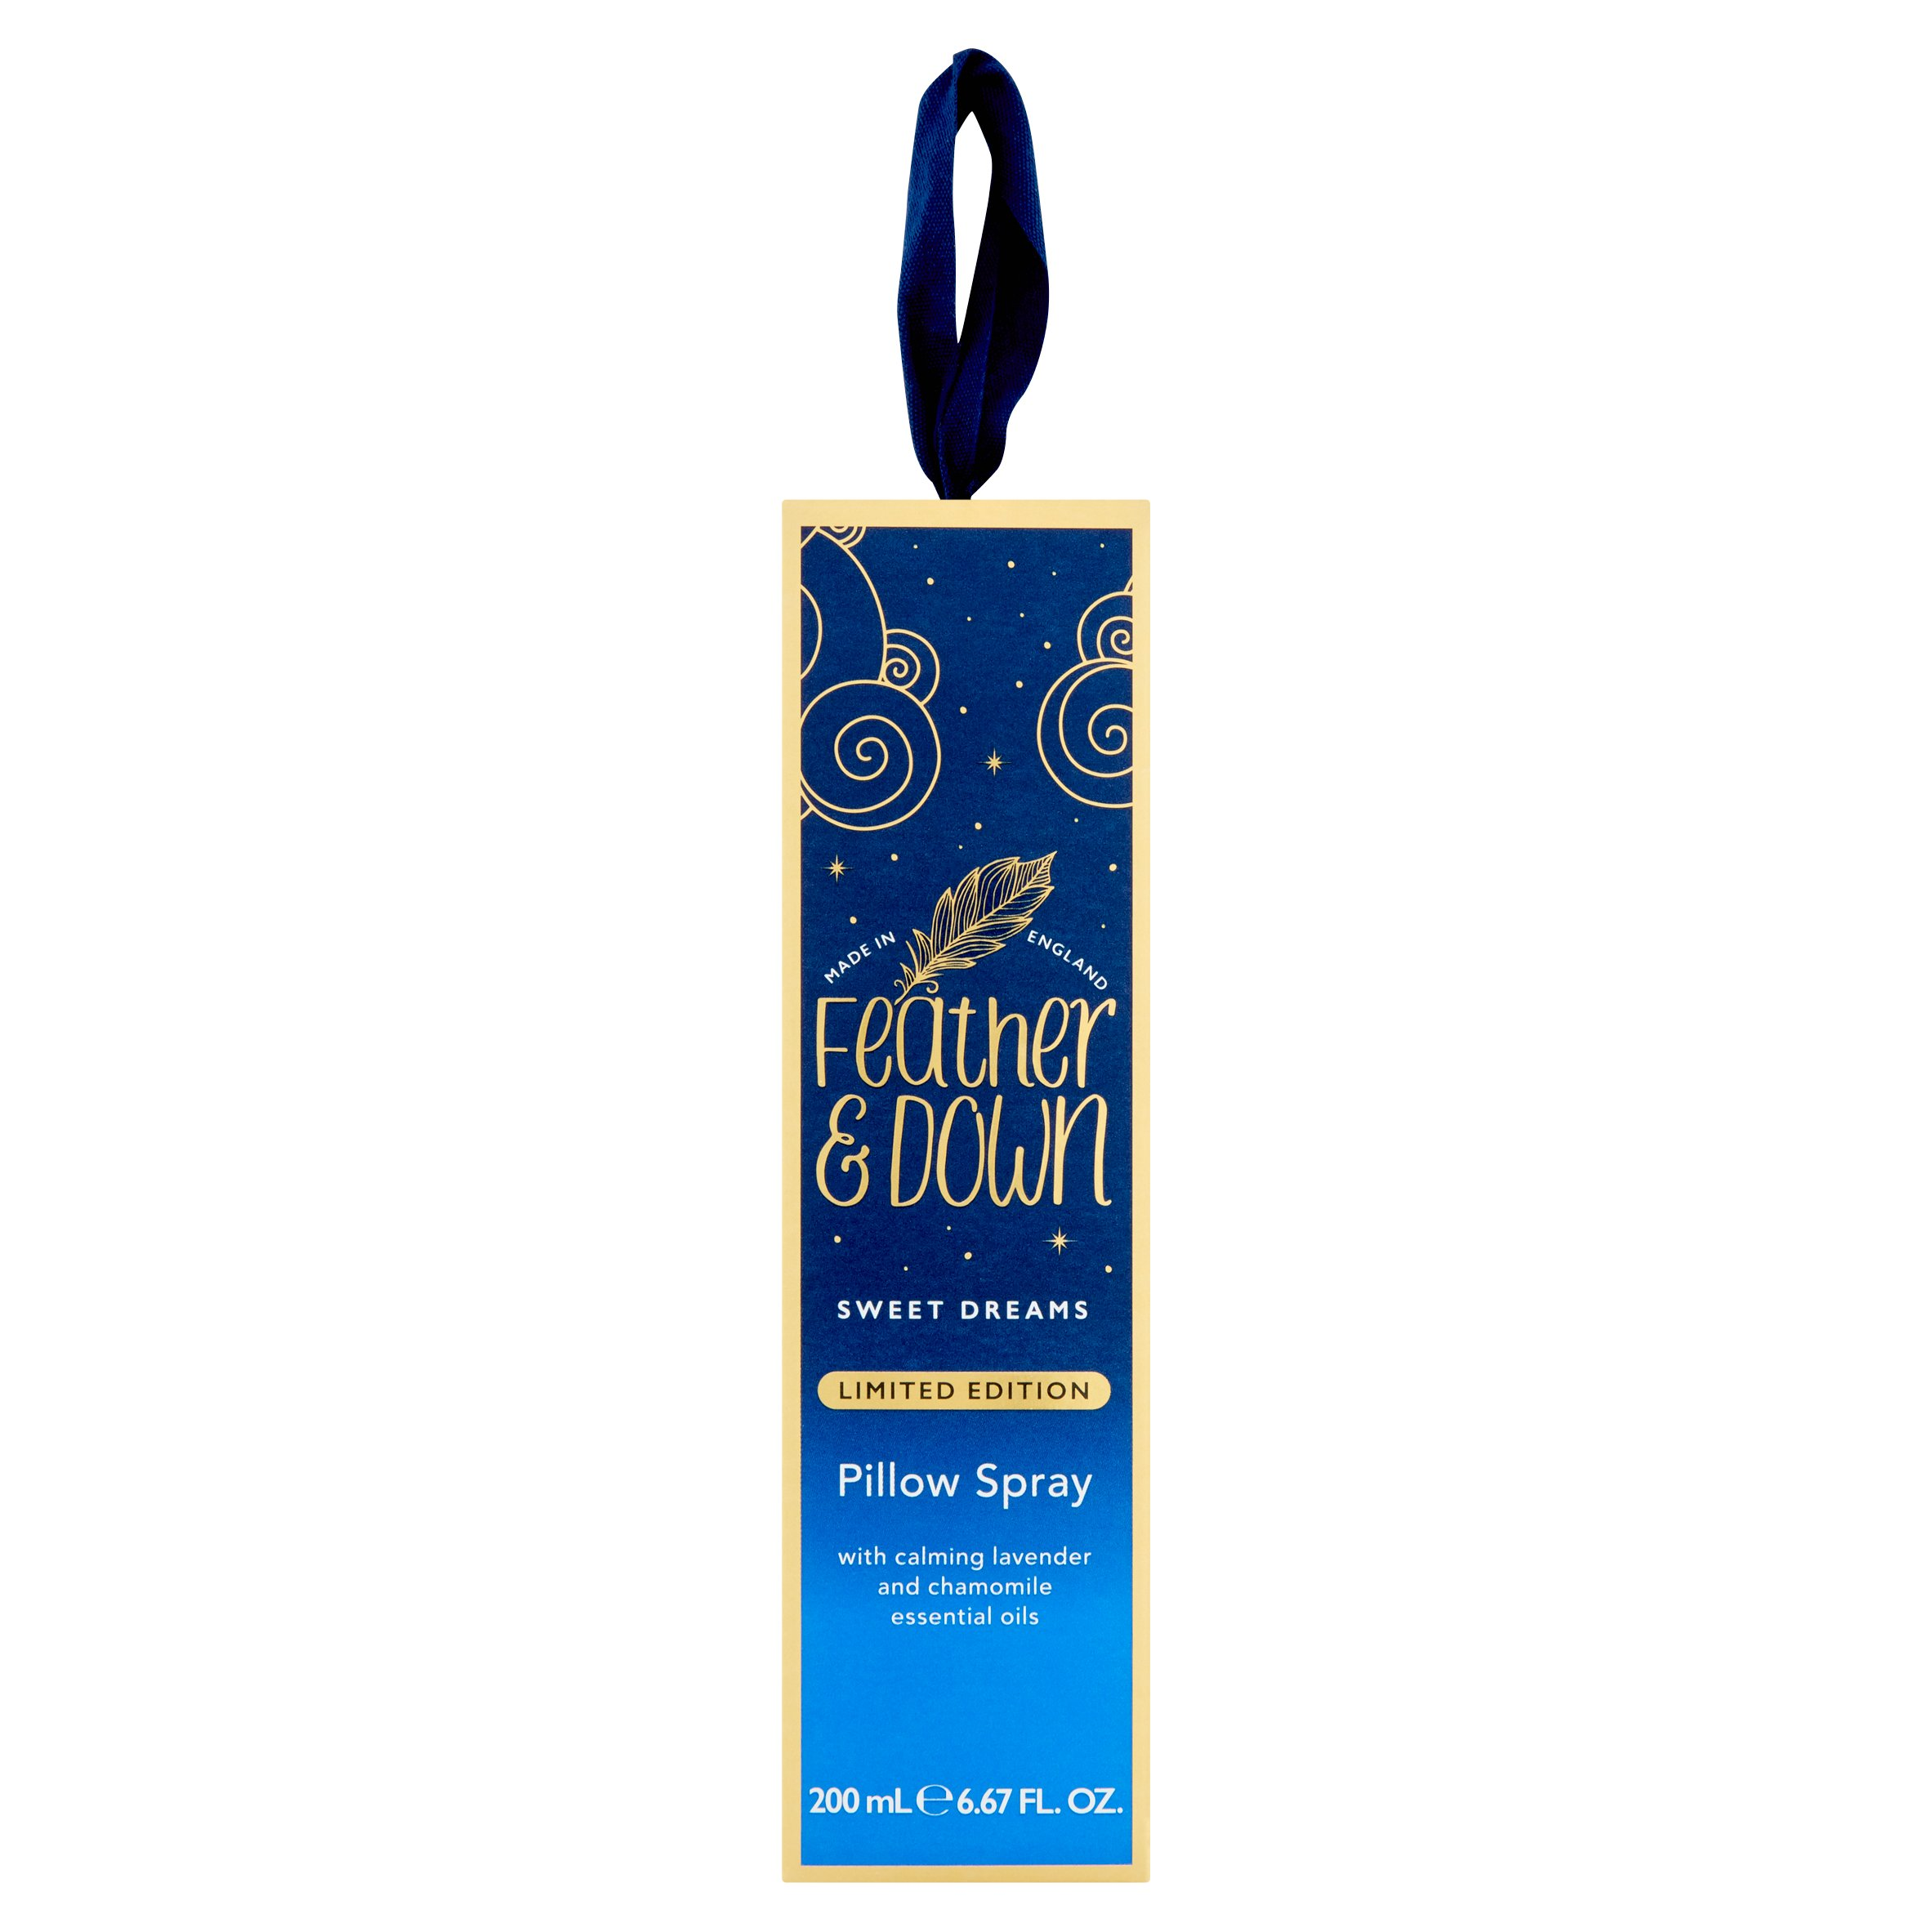 Feather&Down Sweet Dreams Pilllow Spray 200Ml